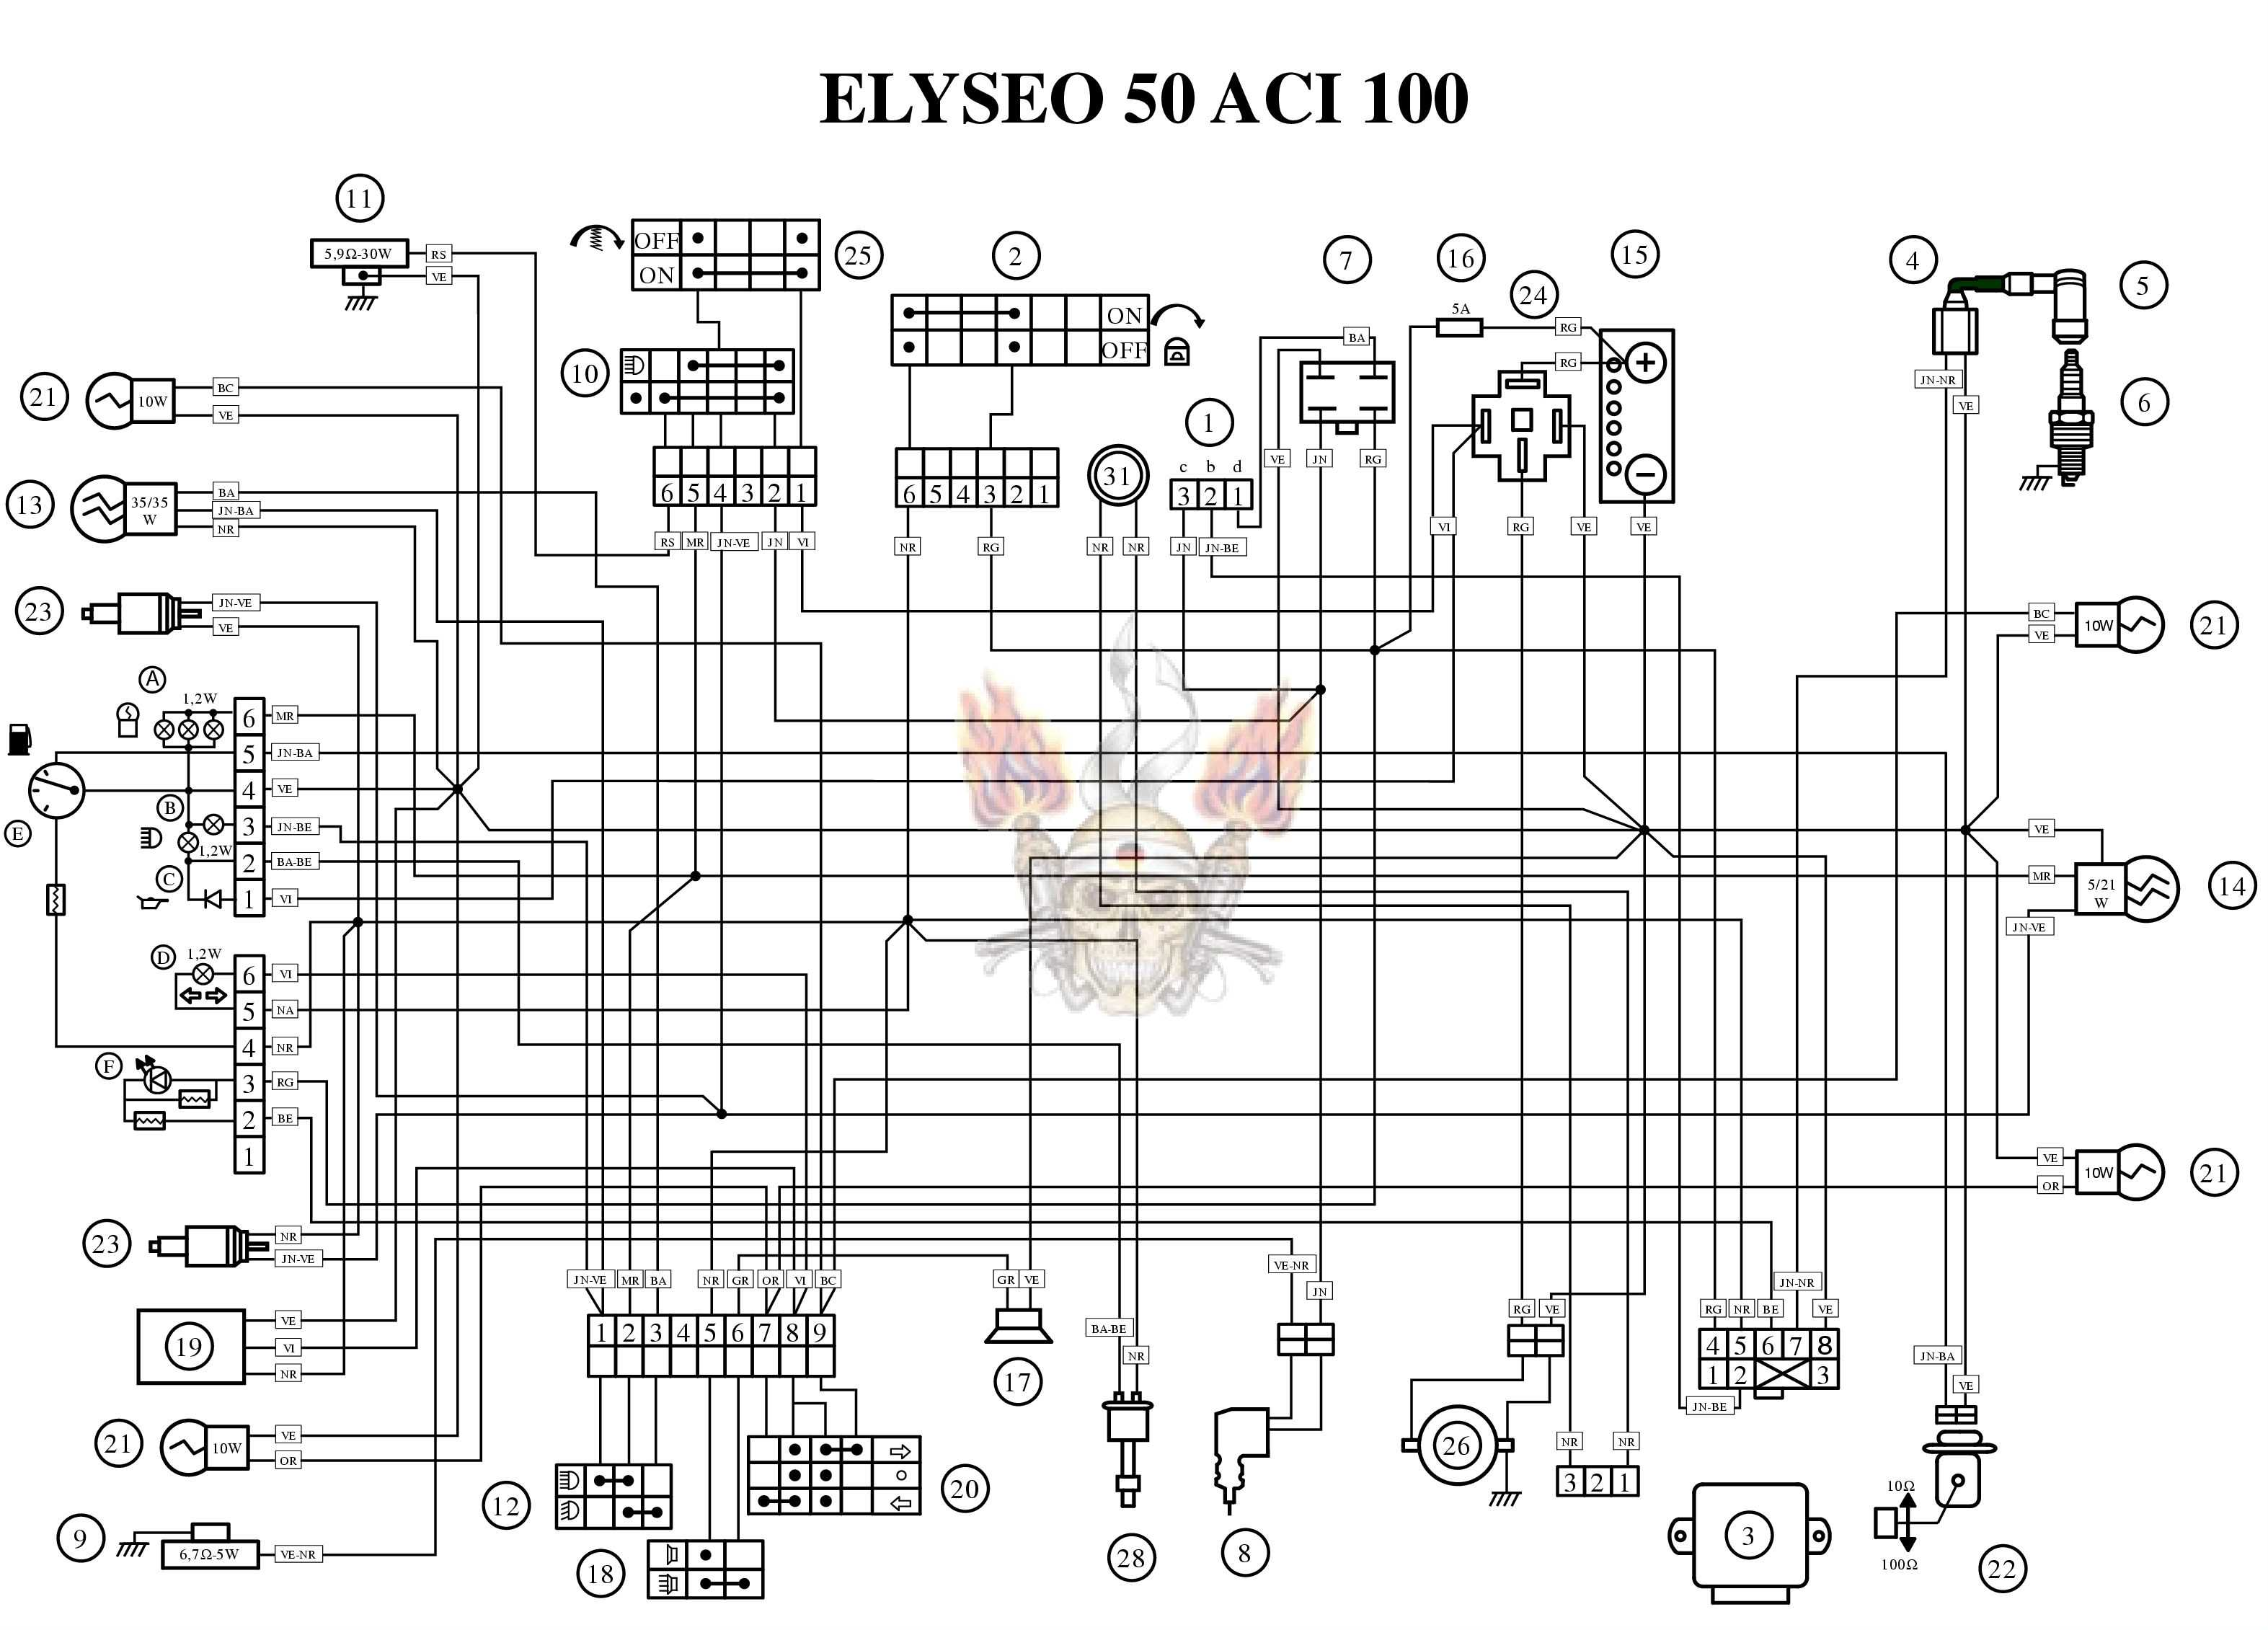 Peugeot Elyseo Wiring Diagram Diagrams Schematics Of Toyota Revo